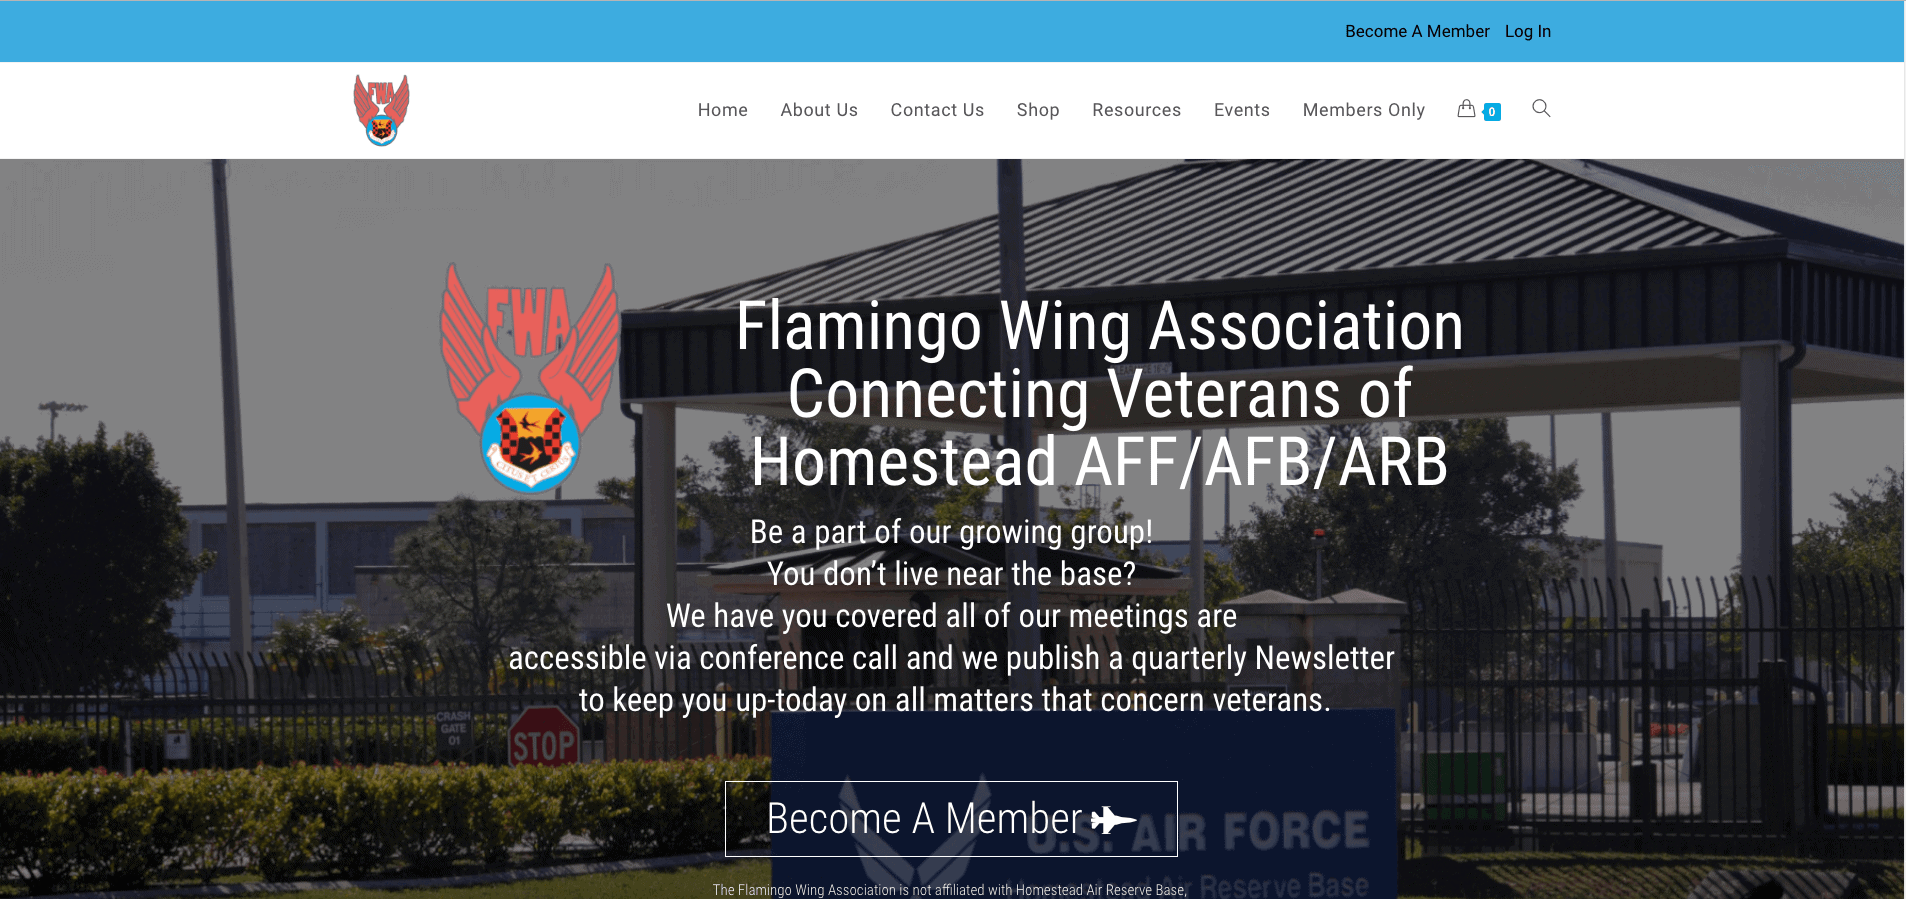 Screenshot of the Flamingo Wing Association home page.